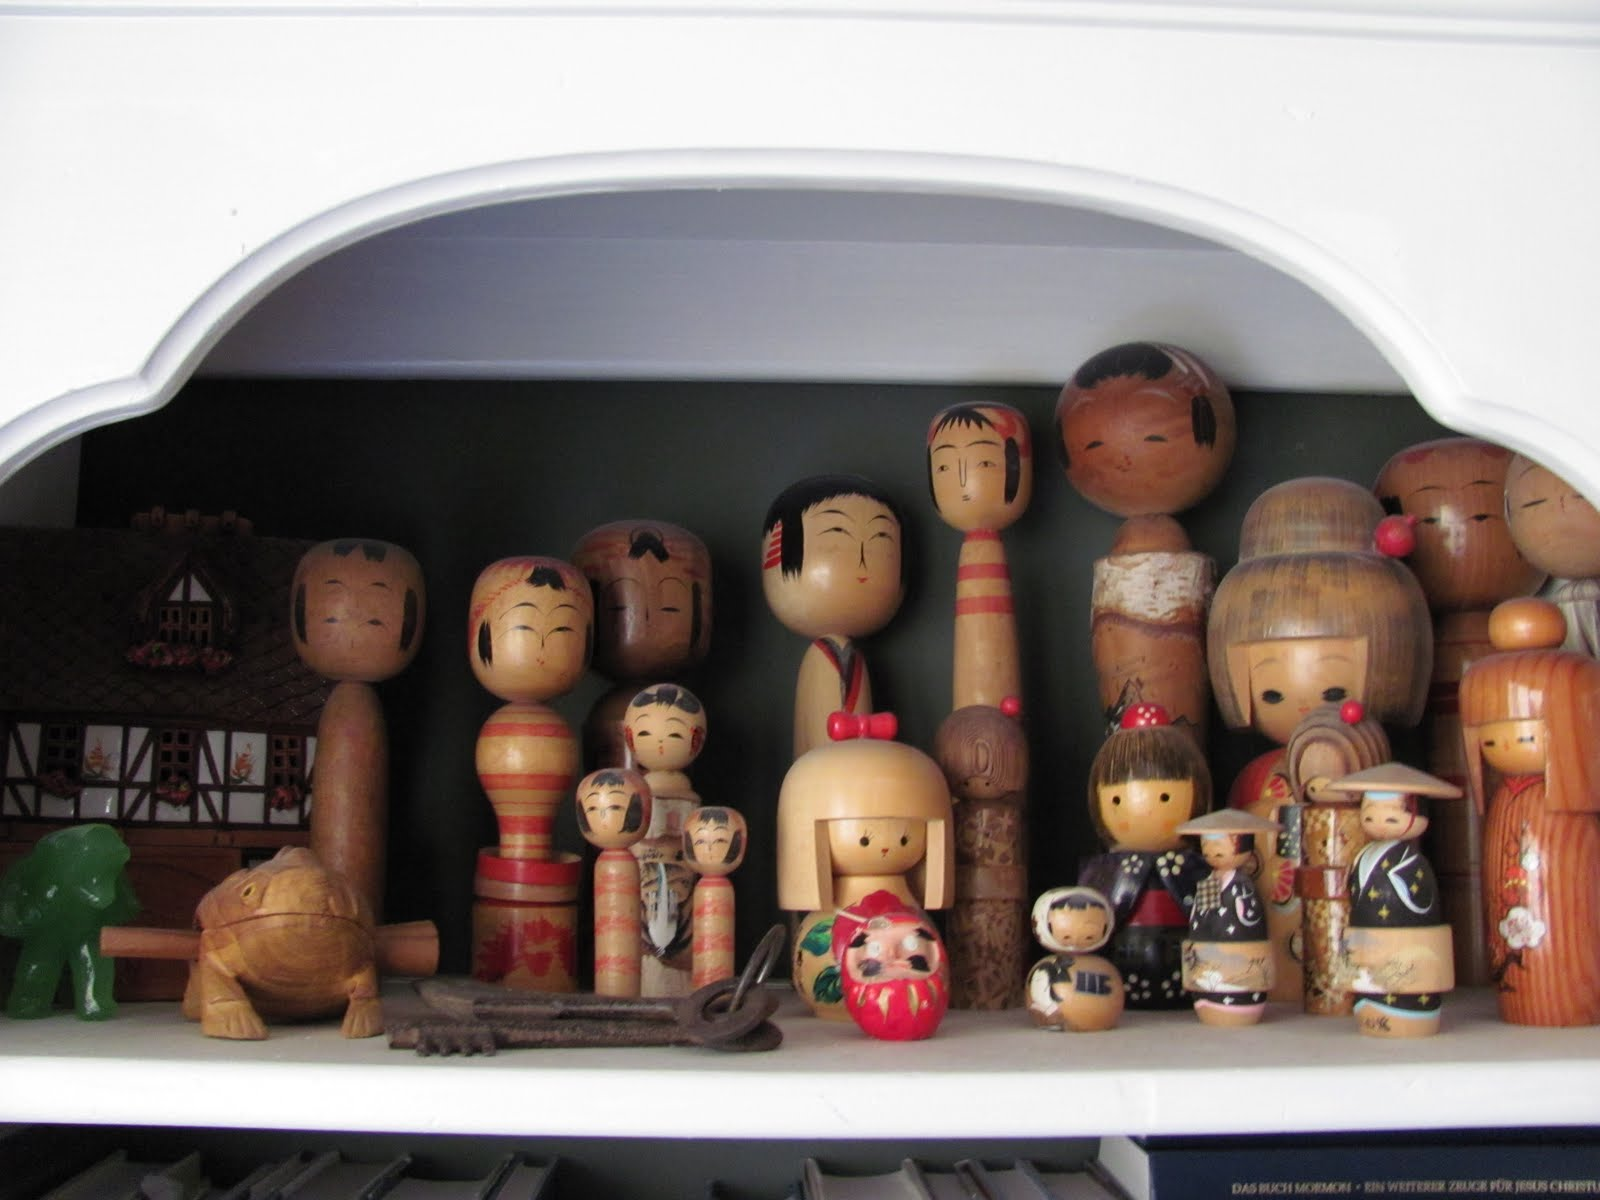 Header: Using Travel Souvenirs in Decorating